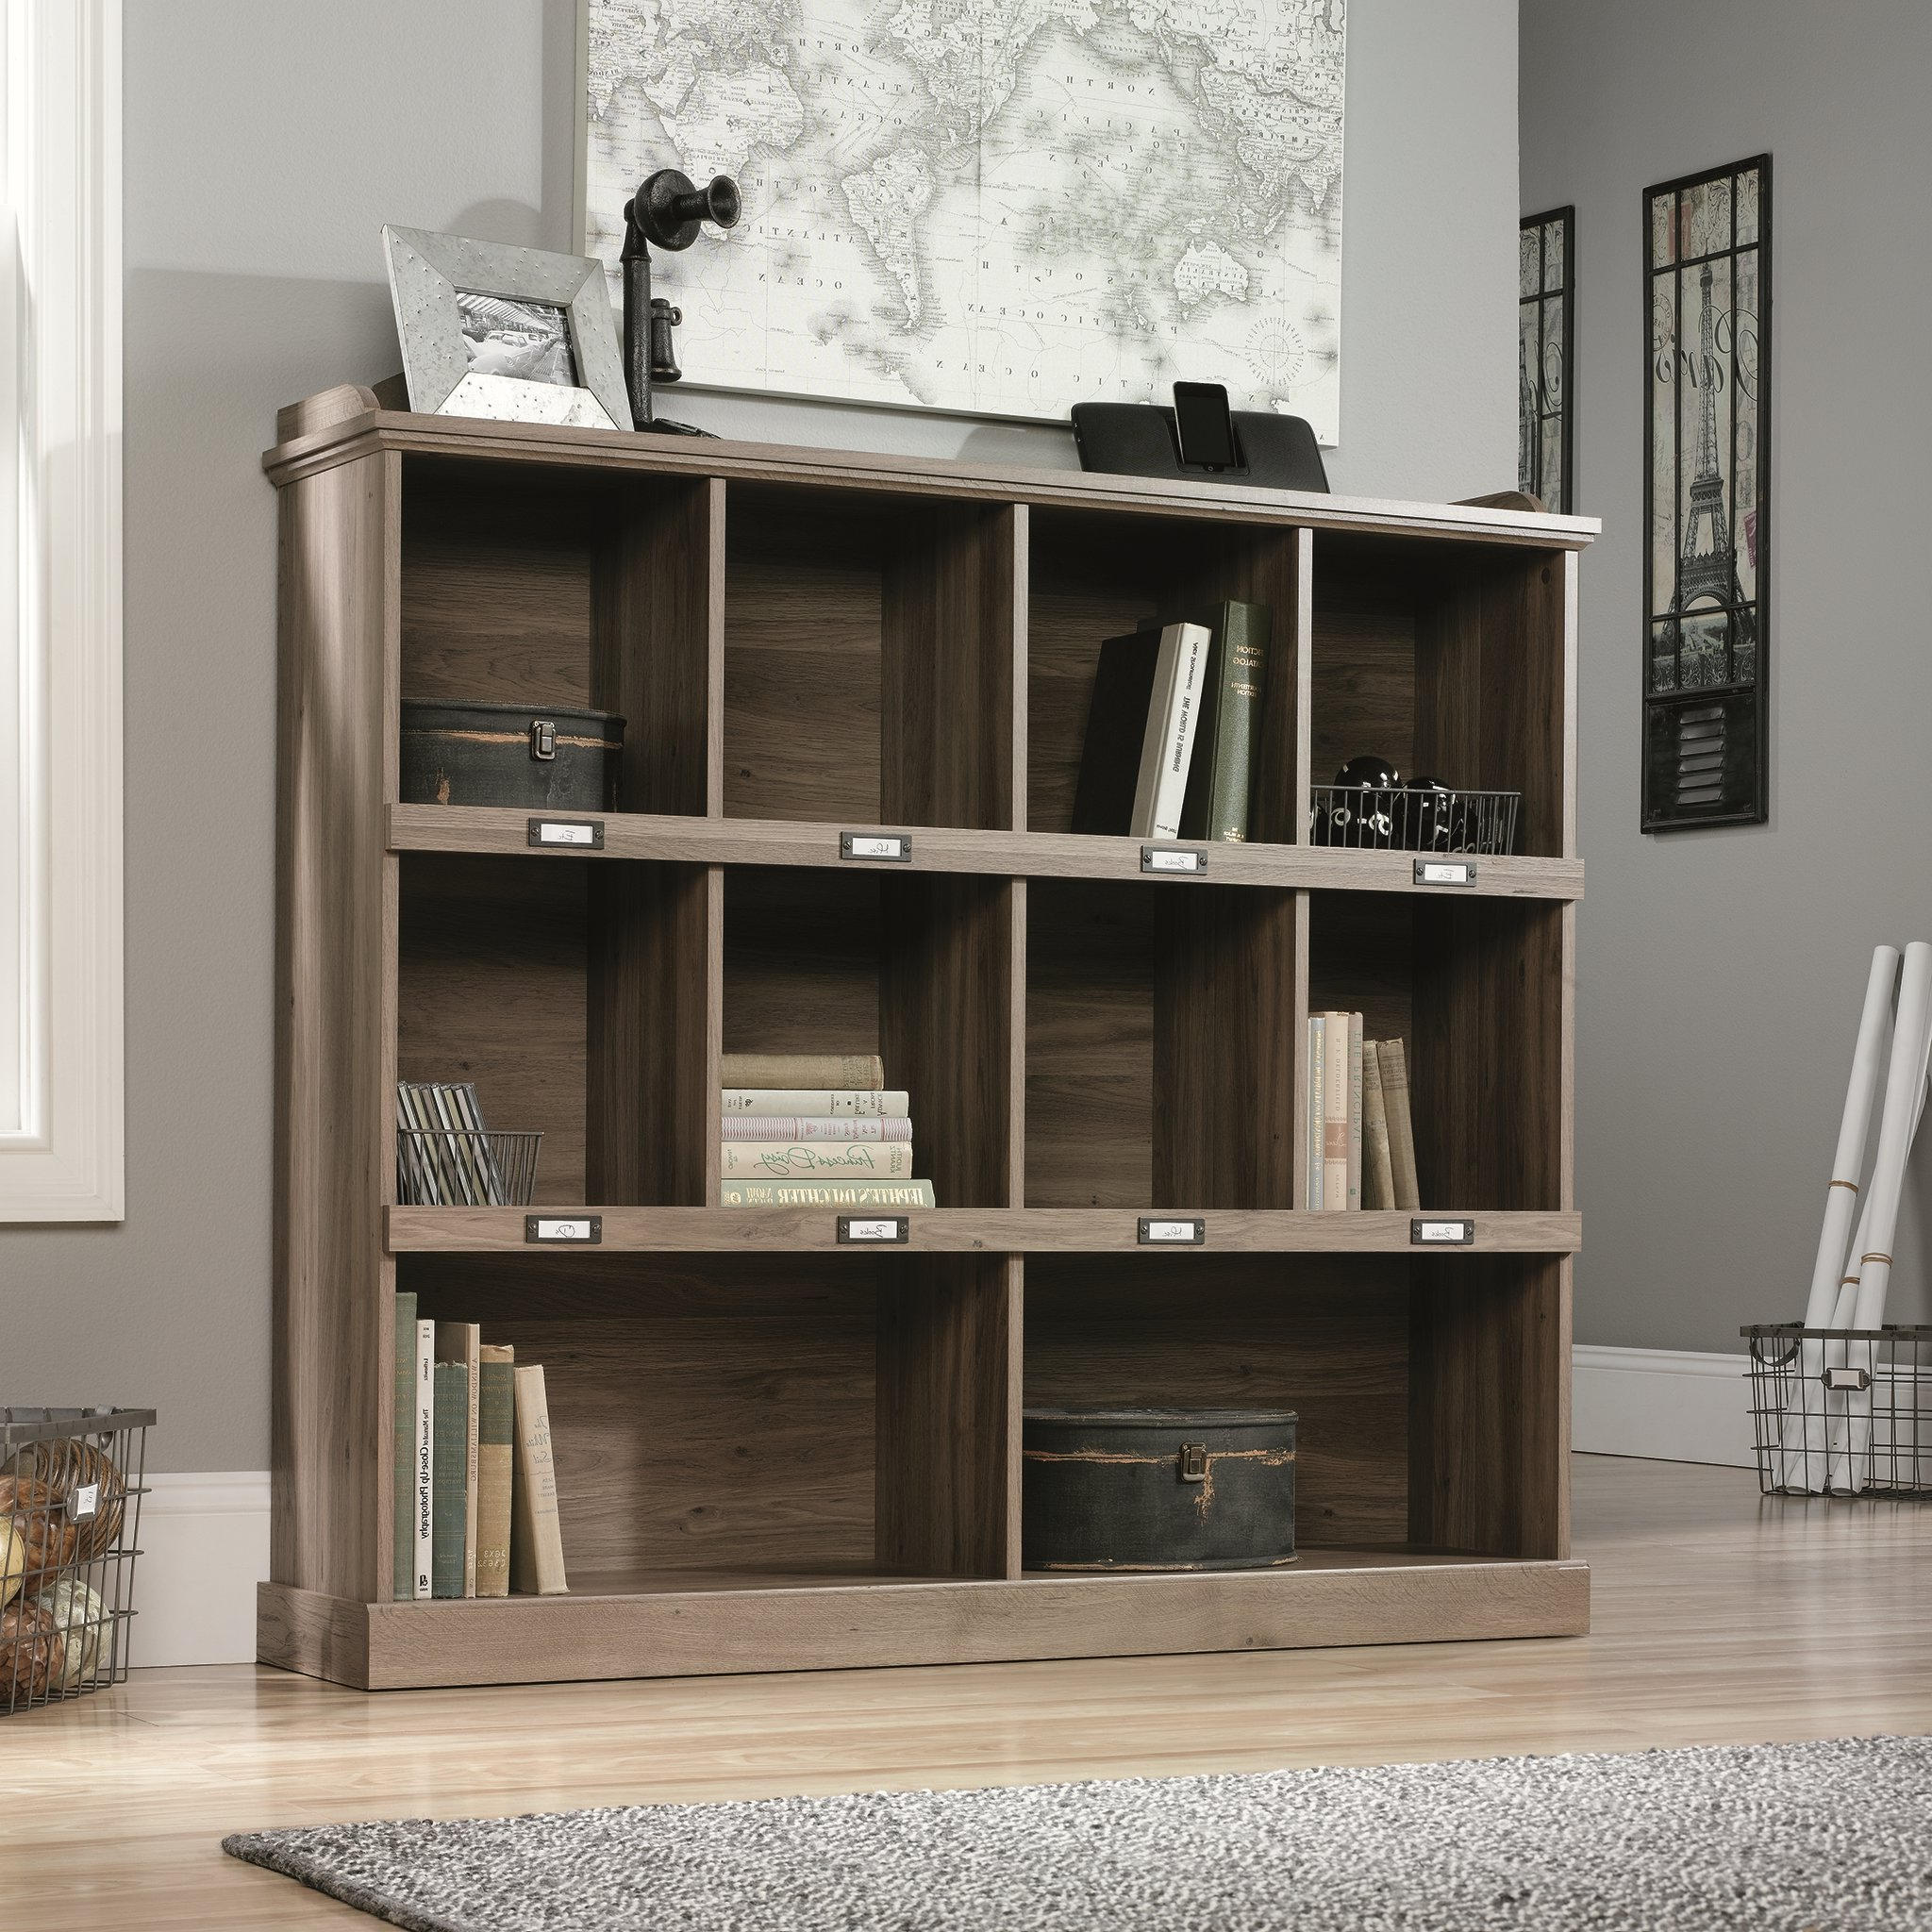 Bowerbank Standard Bookcase Within Most Recent Bowerbank Standard Bookcases (Gallery 4 of 20)